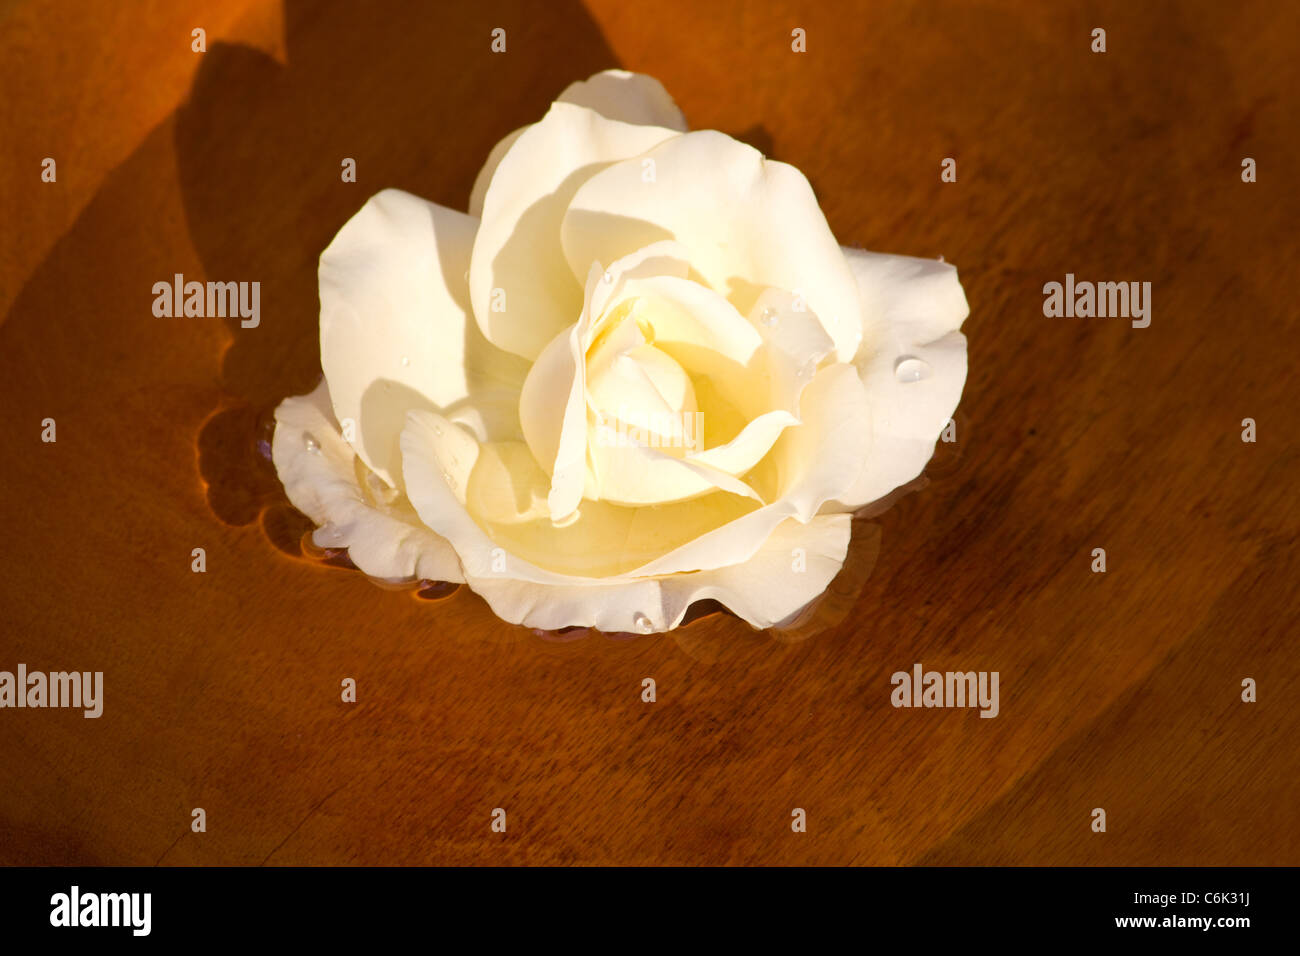 Yellow rose floating on water in a wooden bowl - Stock Image